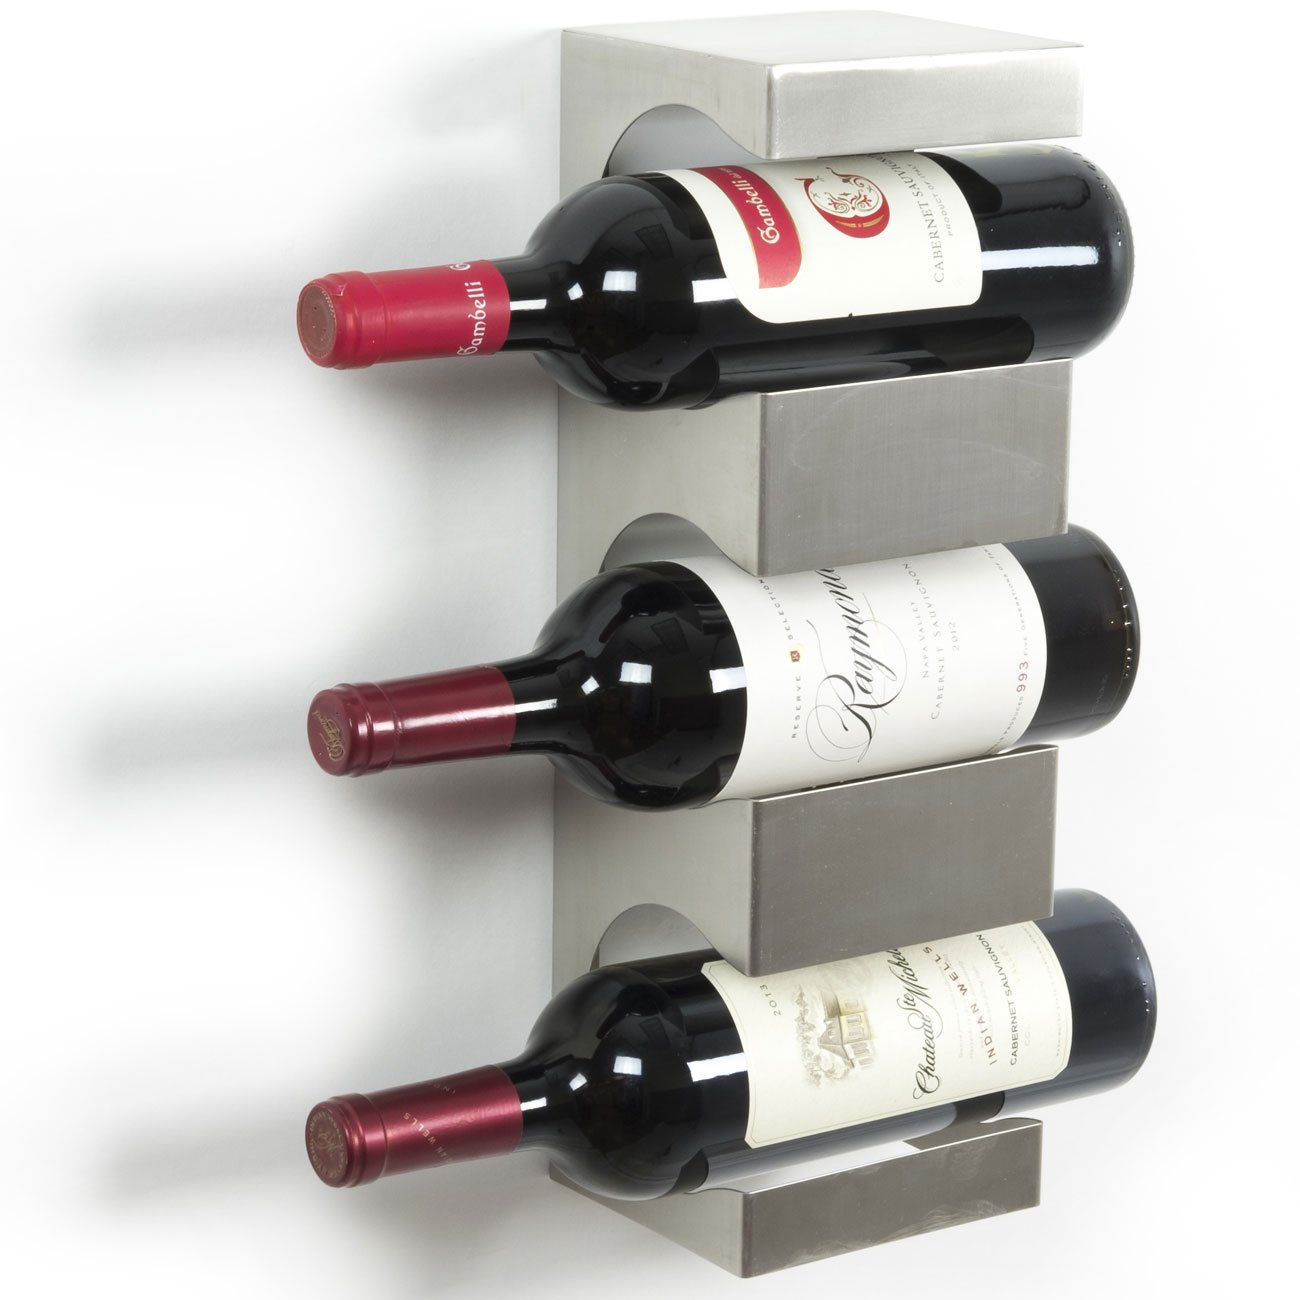 Stainless Steel Wine Rack - Wide Multi Sectional Bottle Holder with Top Shelf Section - Modern Art Design - Wall Mount (3 Bottles)